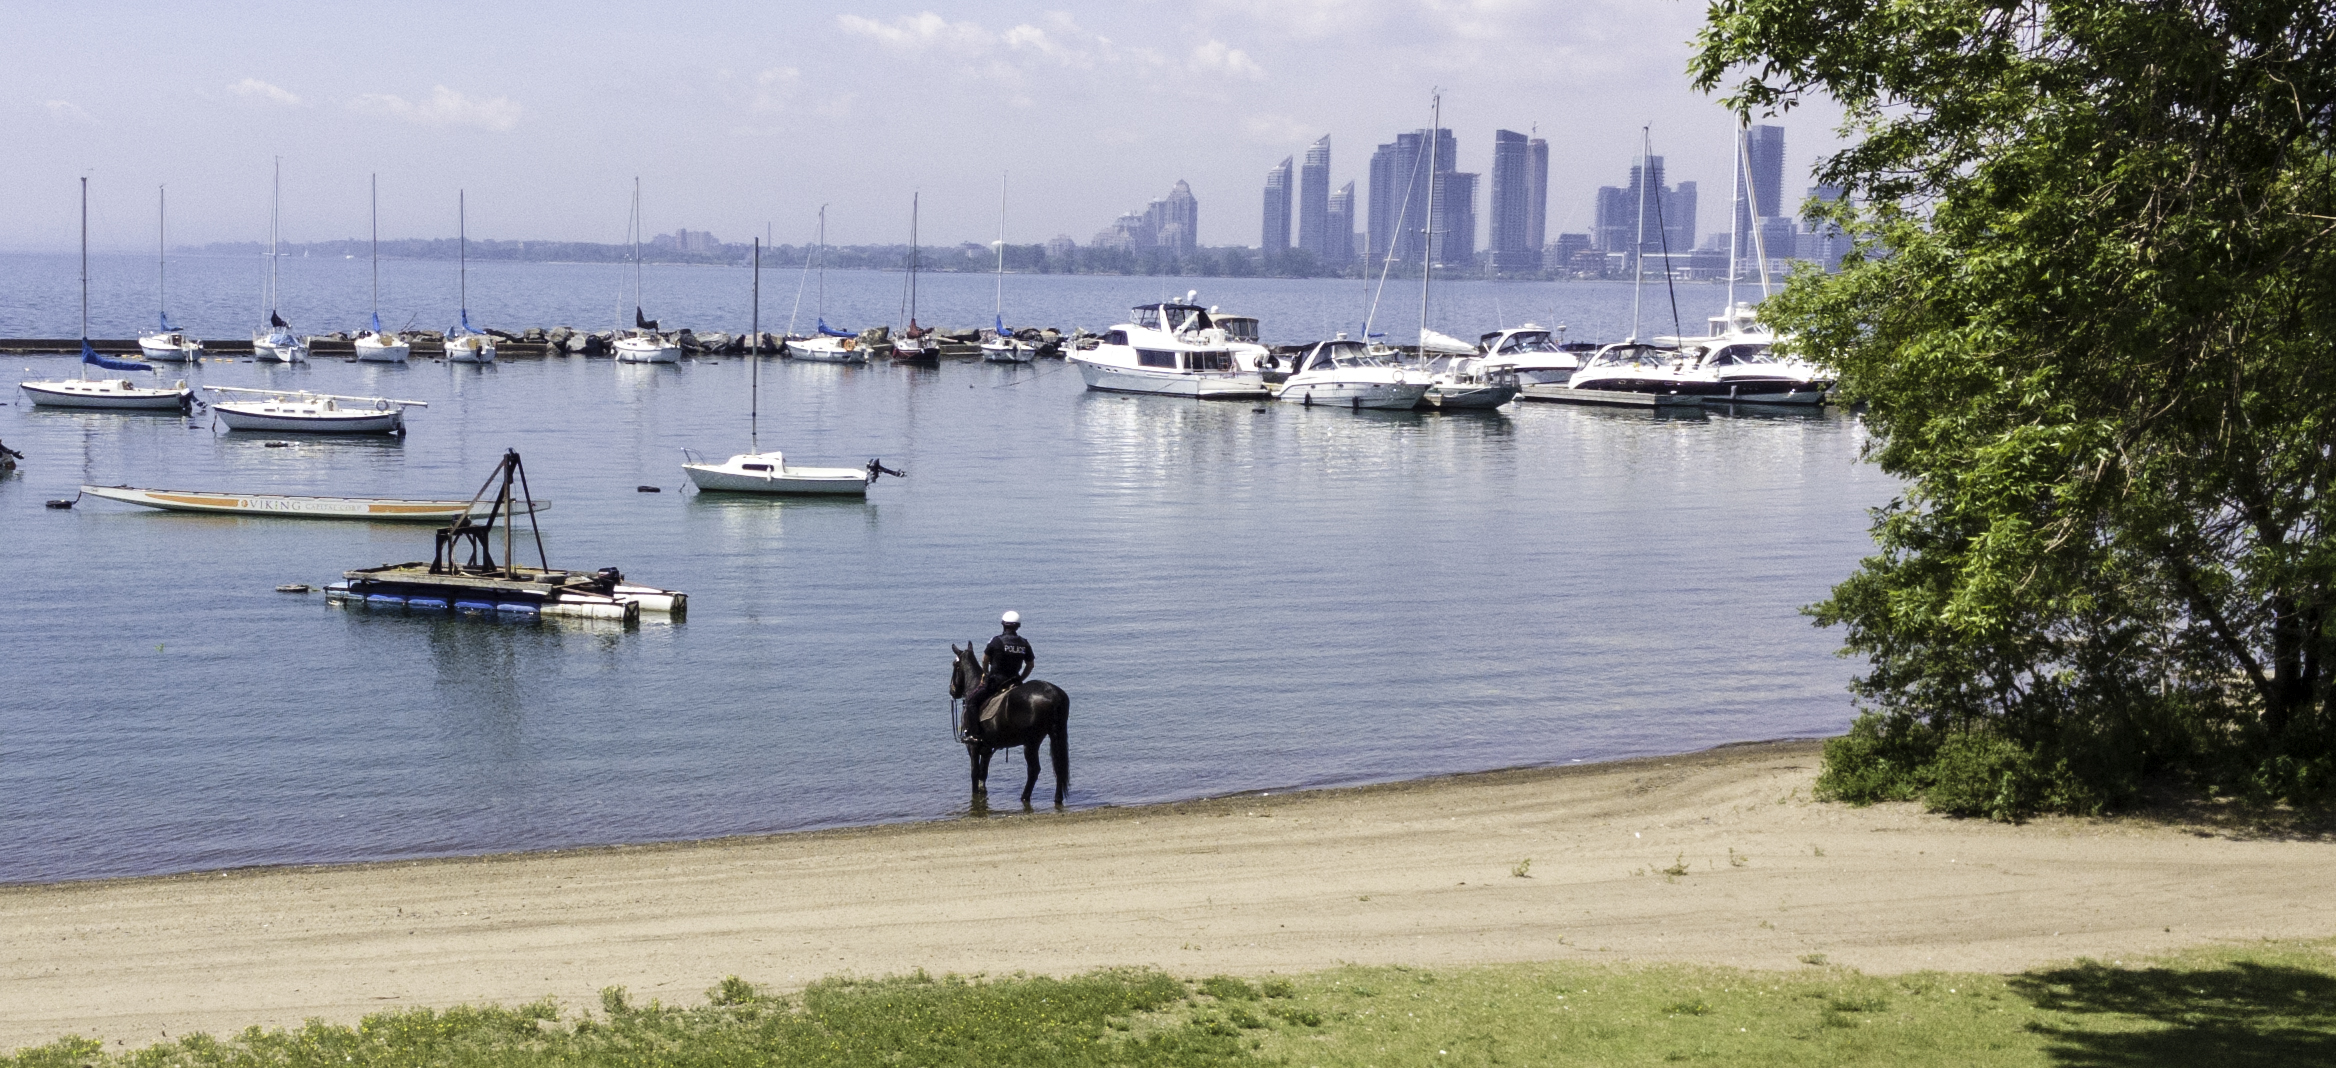 This police officer let his horse stand in the lake to cool his feet down, and talked to him the whole time they stood there.